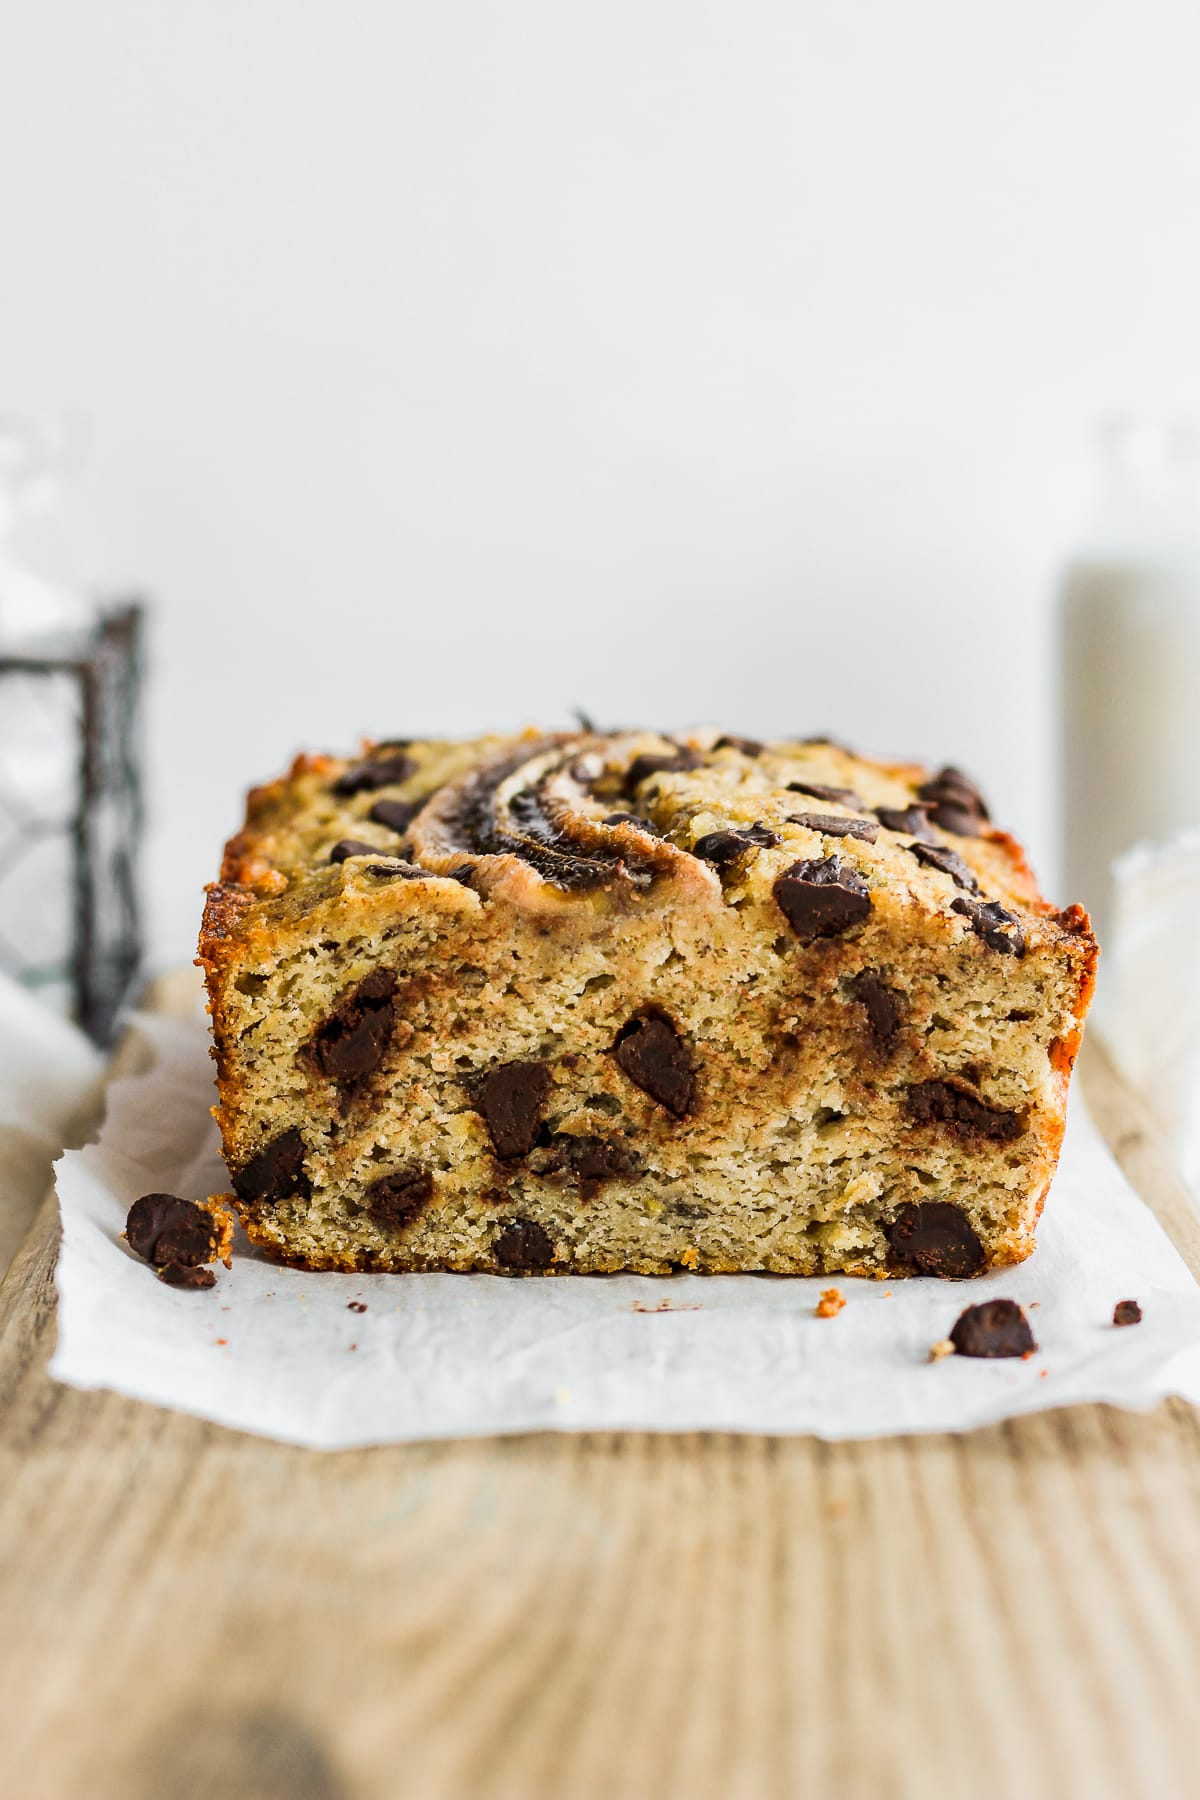 Easy Paleo Chocolate Chip Banana Bread - an easy and delicious paleo banana bread recipe the entire family will love! #bananabread #paleobananabread #glutenfreebananabread #healthybananabread #easybananabread #bestbananabread